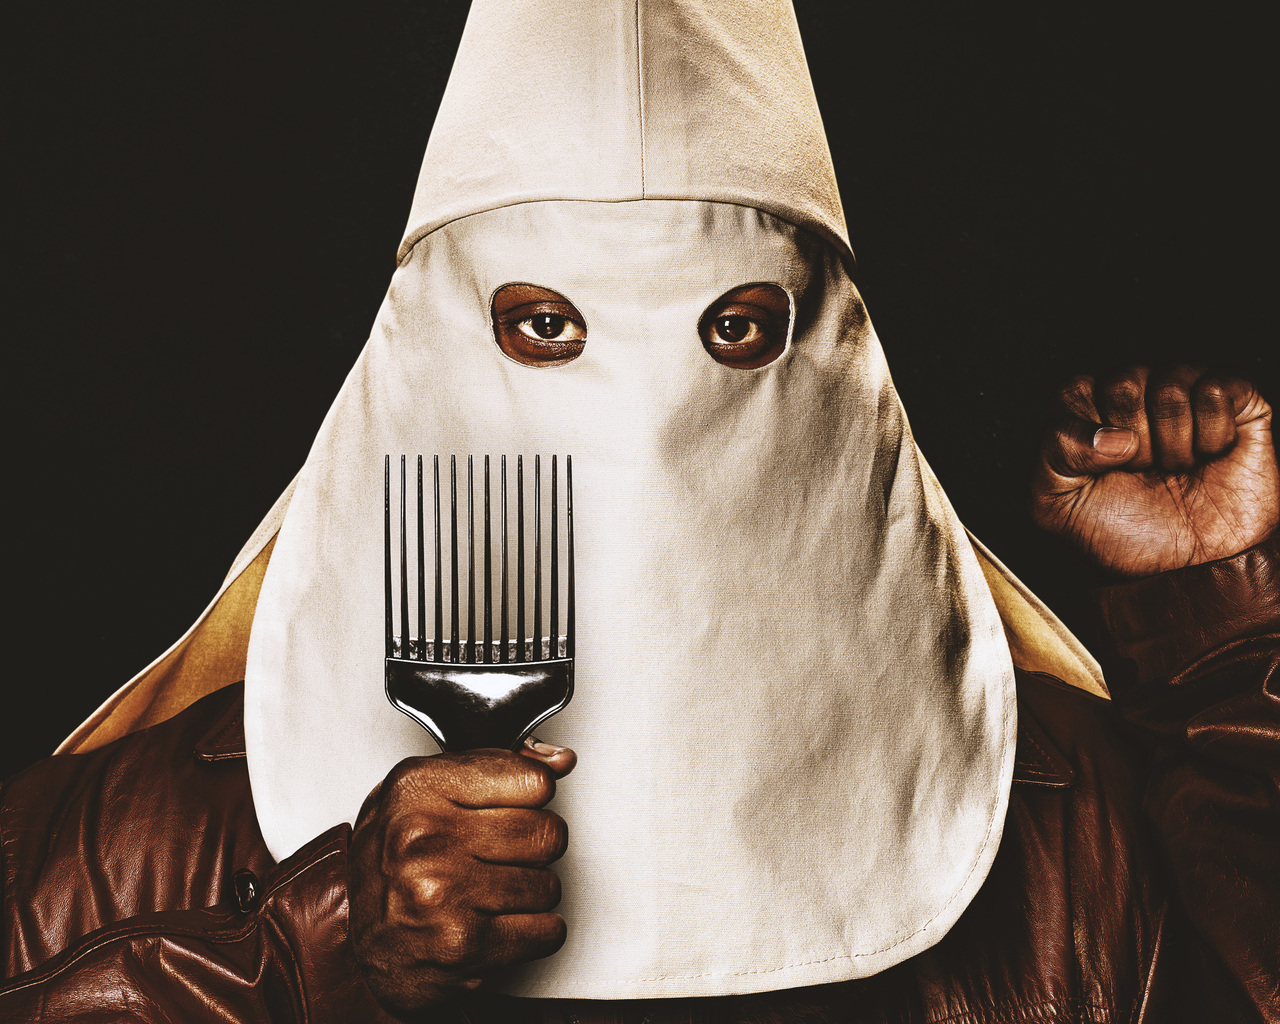 blackkklansman-2018-movie-4k-b4.jpg